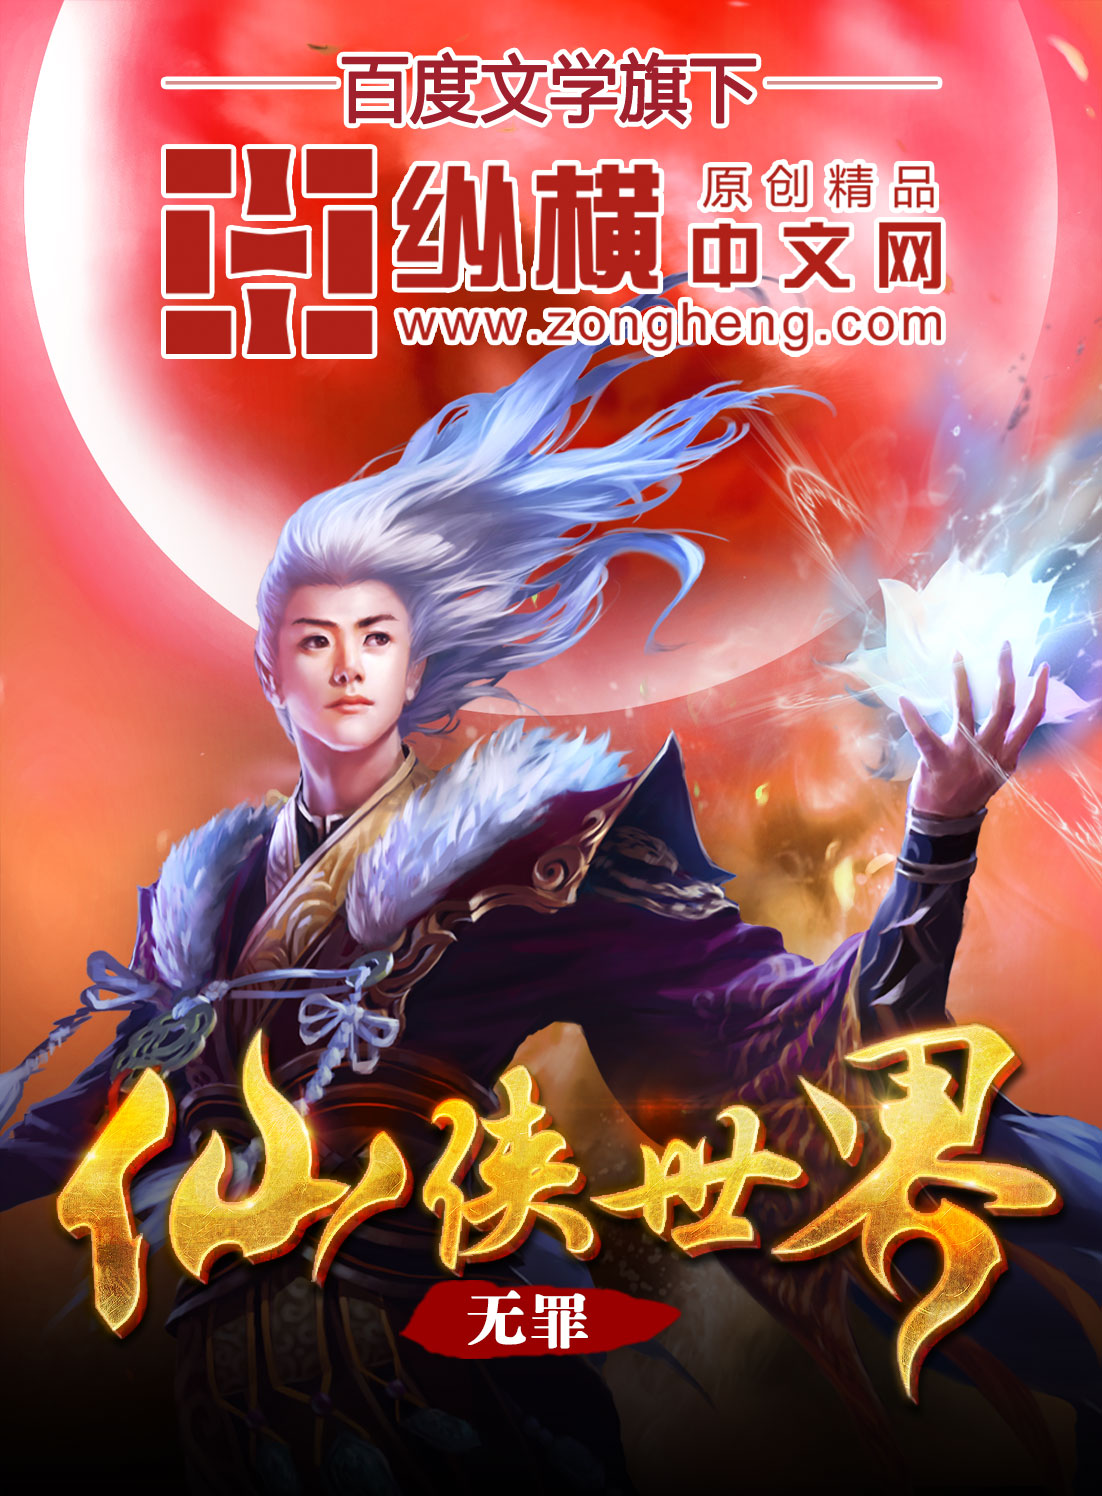 World of Xianxia - Novel Updates